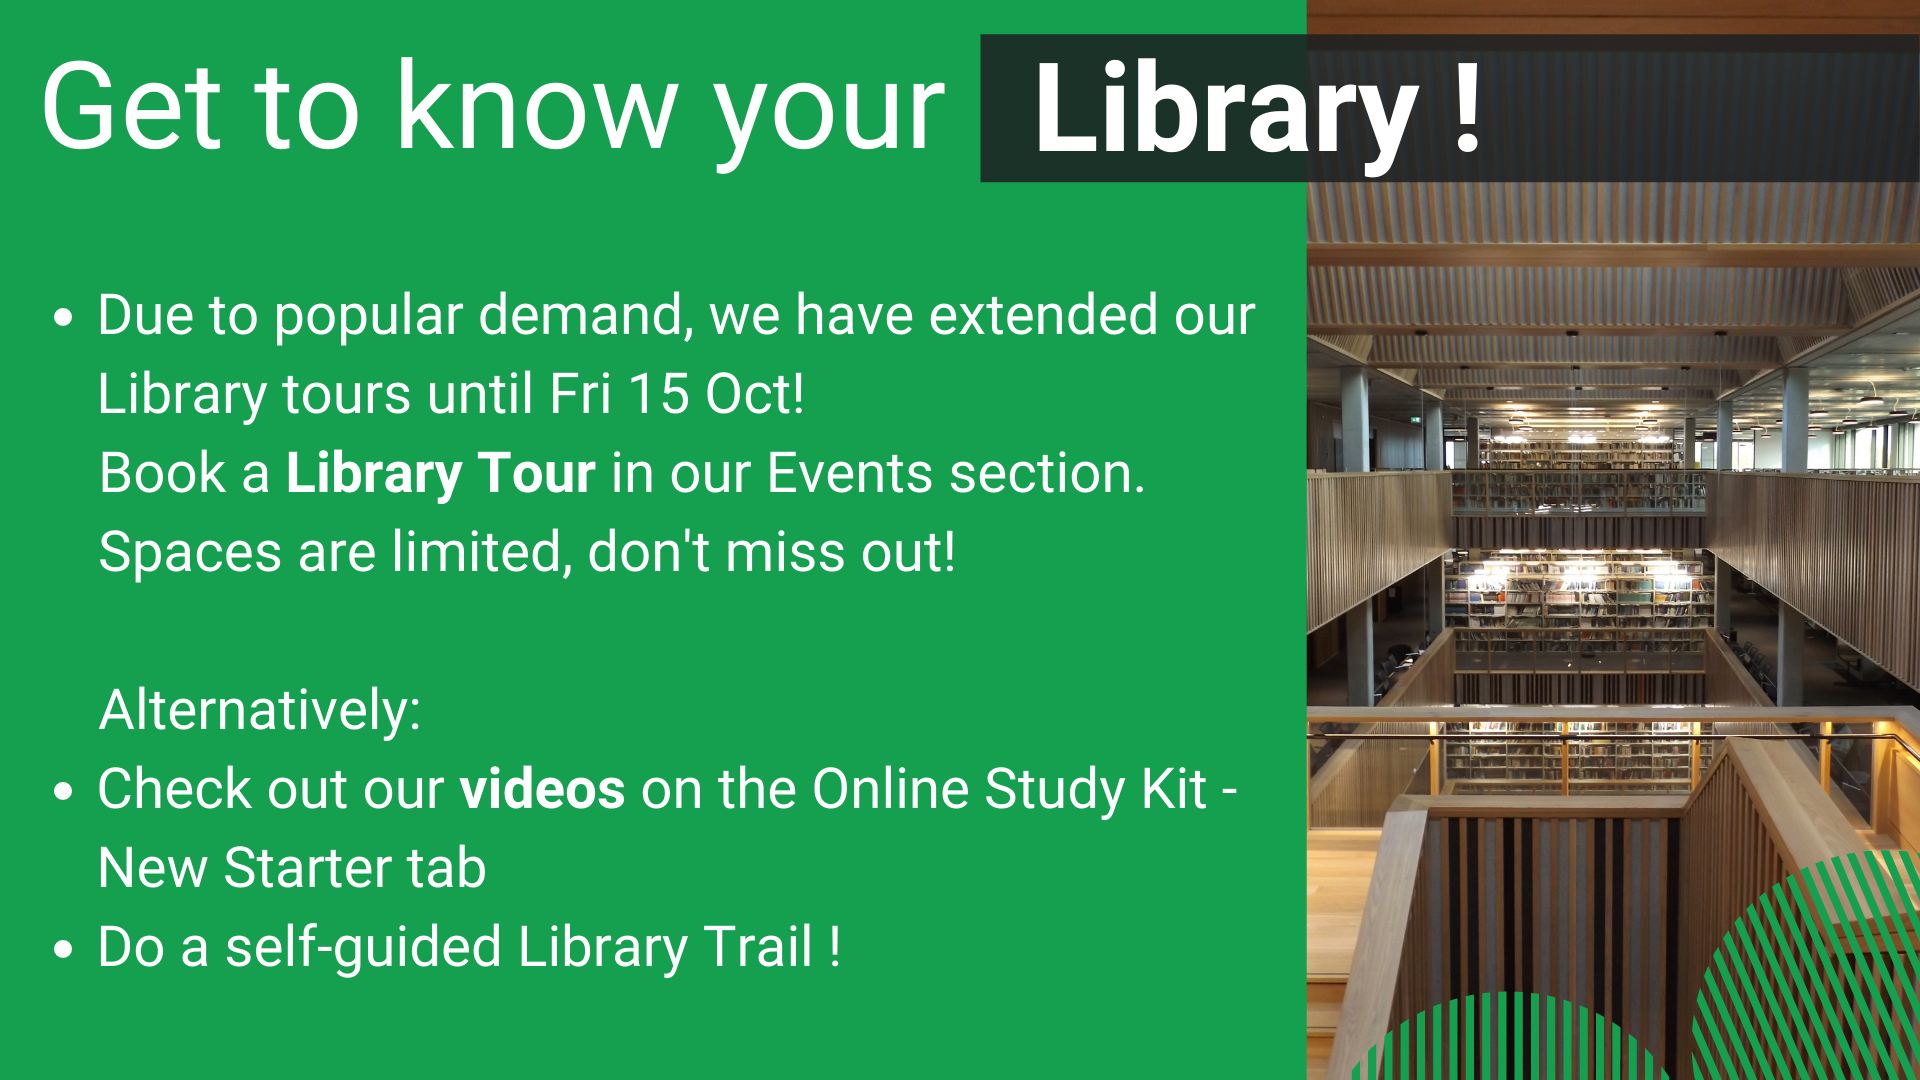 Get to know your Library. You can do this by doing a self-guided Library Trail, talking to us at the Information pod or booking a Library tour. Please speak to staff for details.